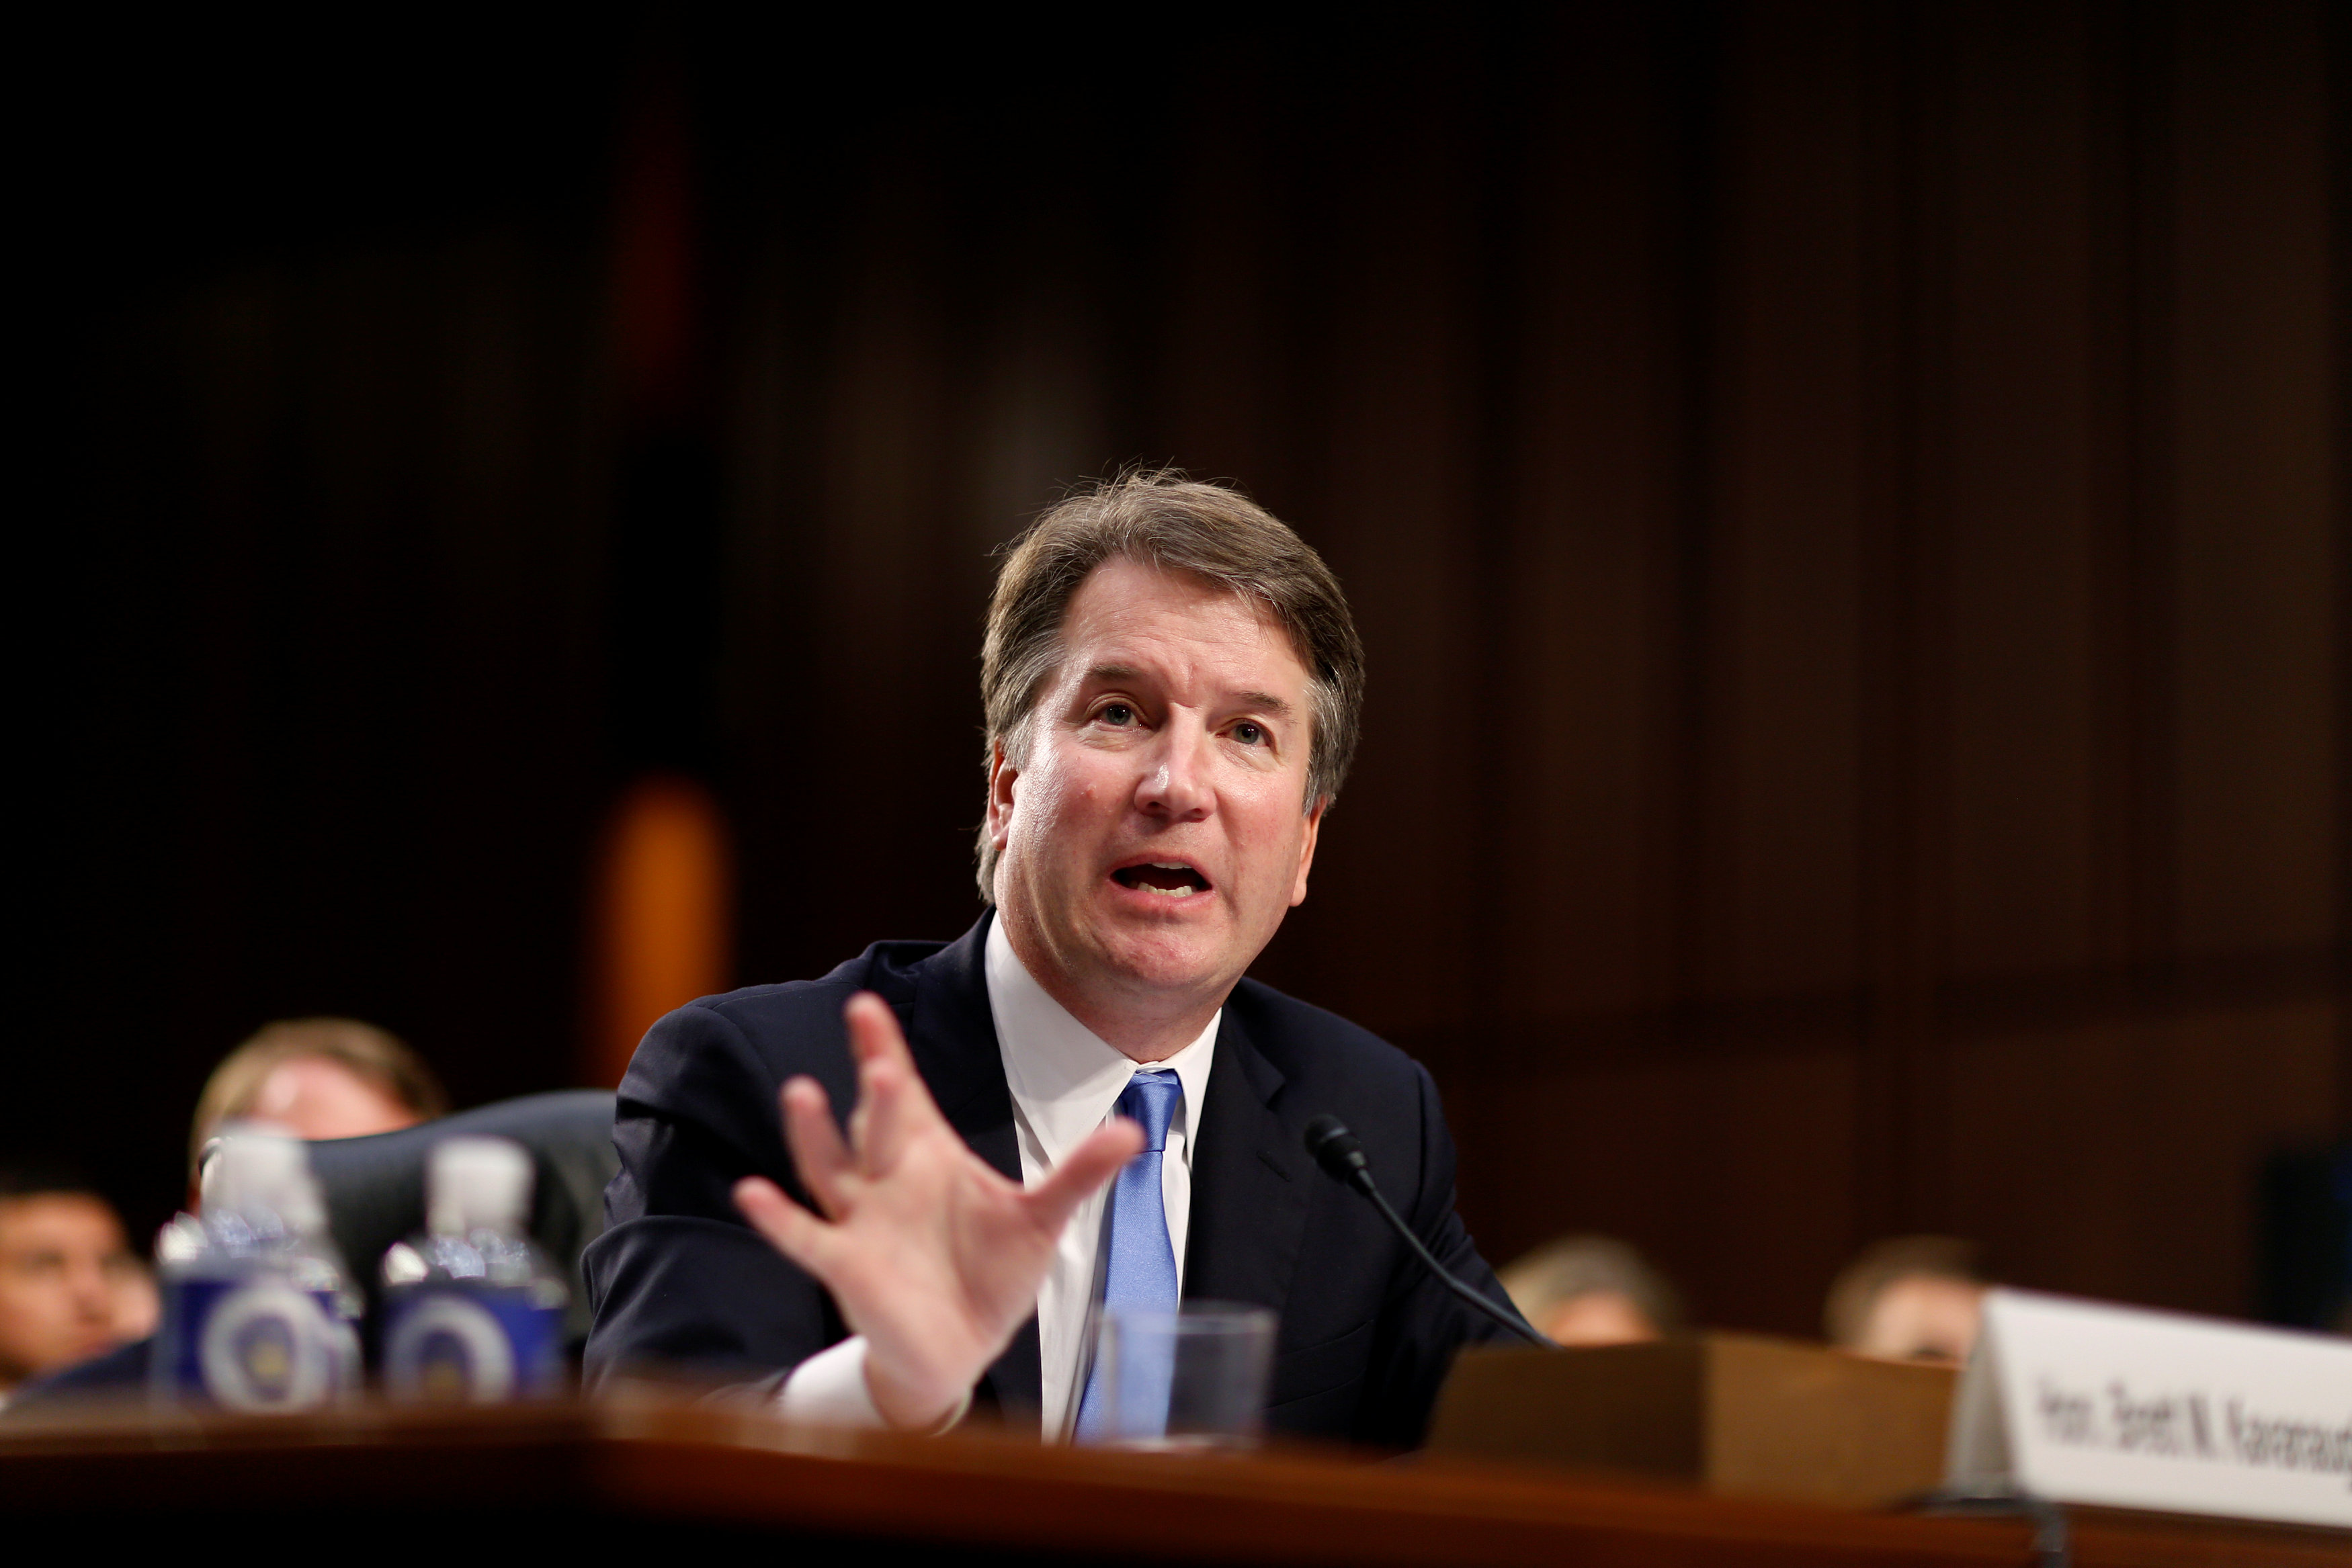 Supreme Court nominee Brett Kavanaugh testifies during the second day of his confirmation hearing before the Senate Judiciary Committee on Capitol Hill in Washington, U.S., September 5, 2018. REUTERS/Joshua Roberts